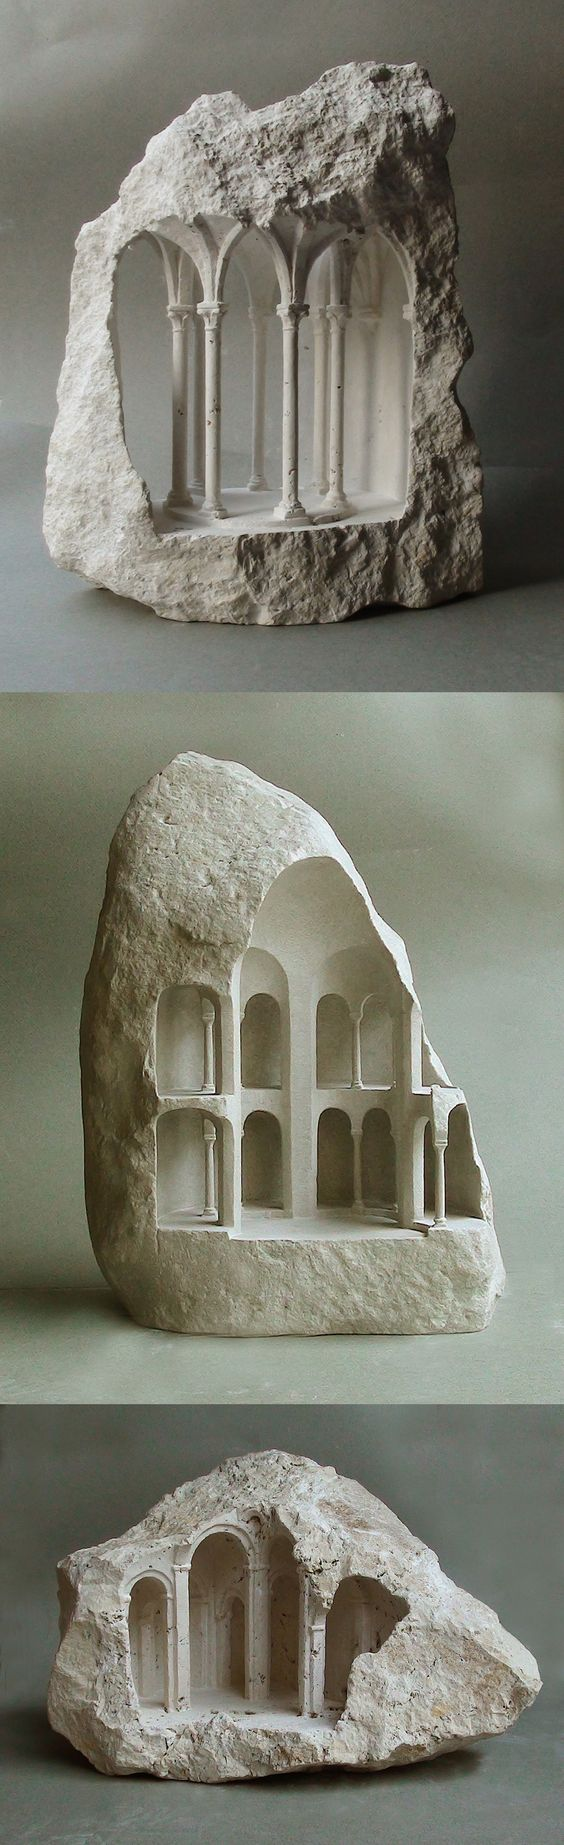 new-miniature-architectural-structures-carved-into-raw-stone-by-matthew-simmonds